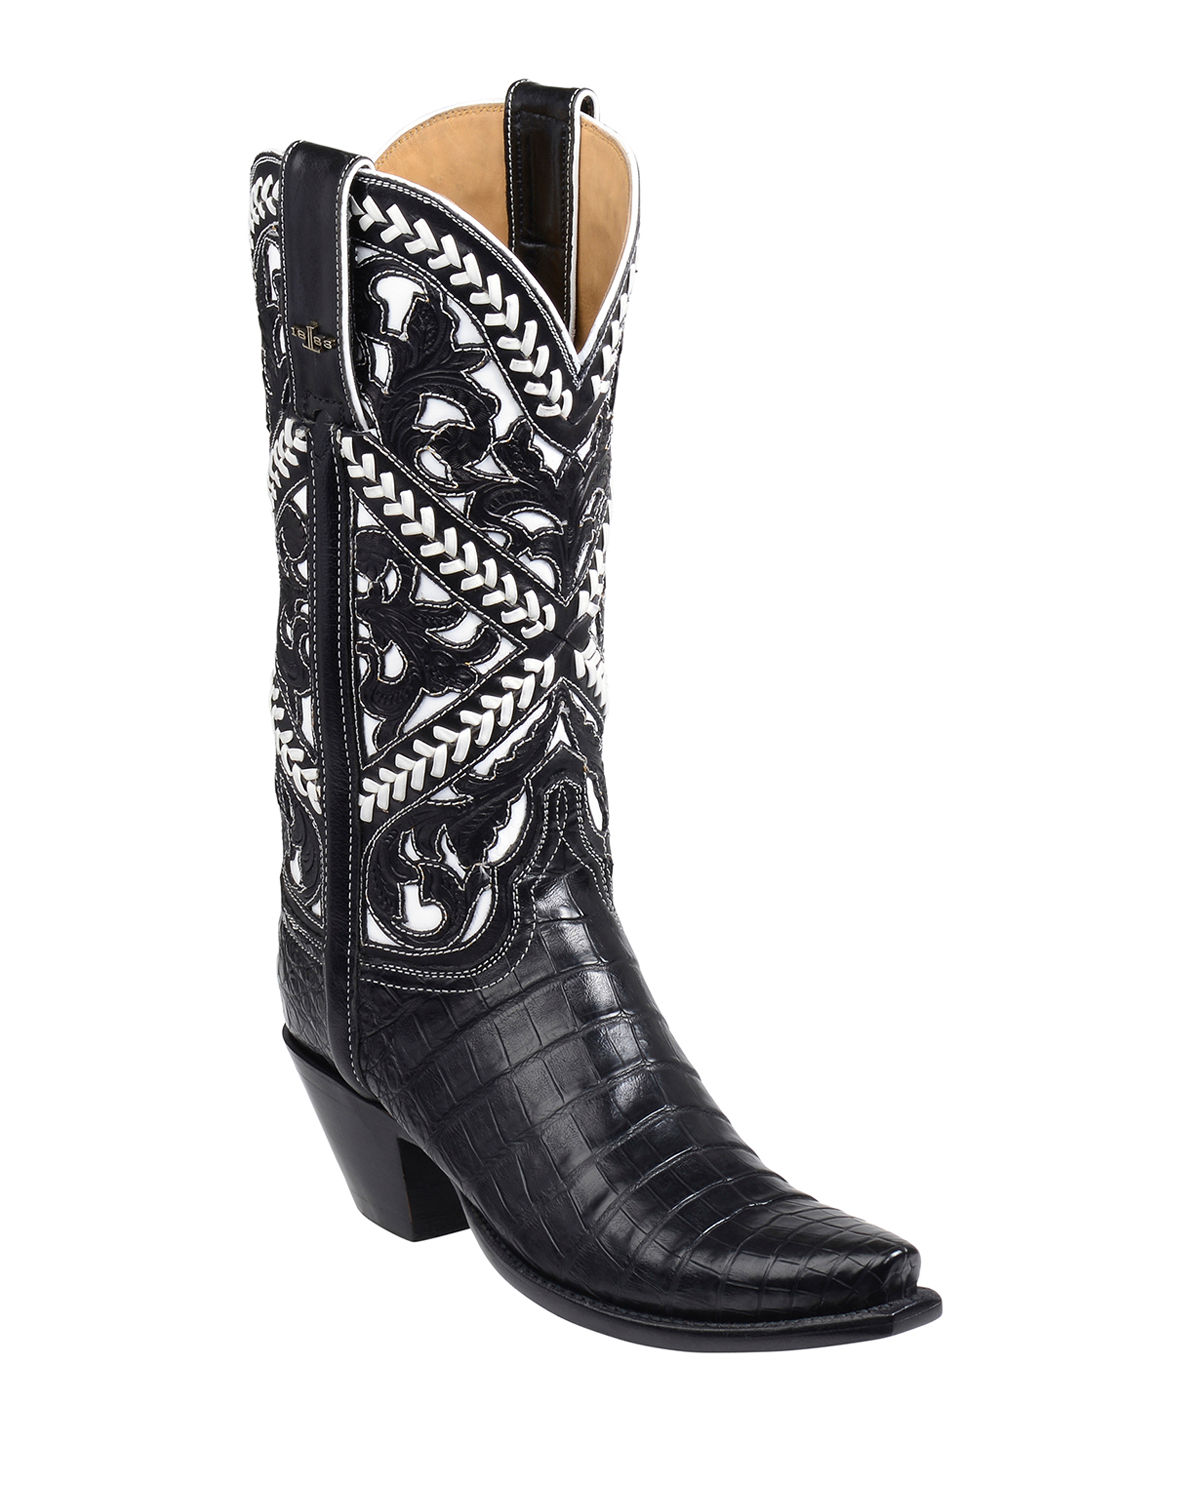 Sweetwater Alligator Cowboy Boots